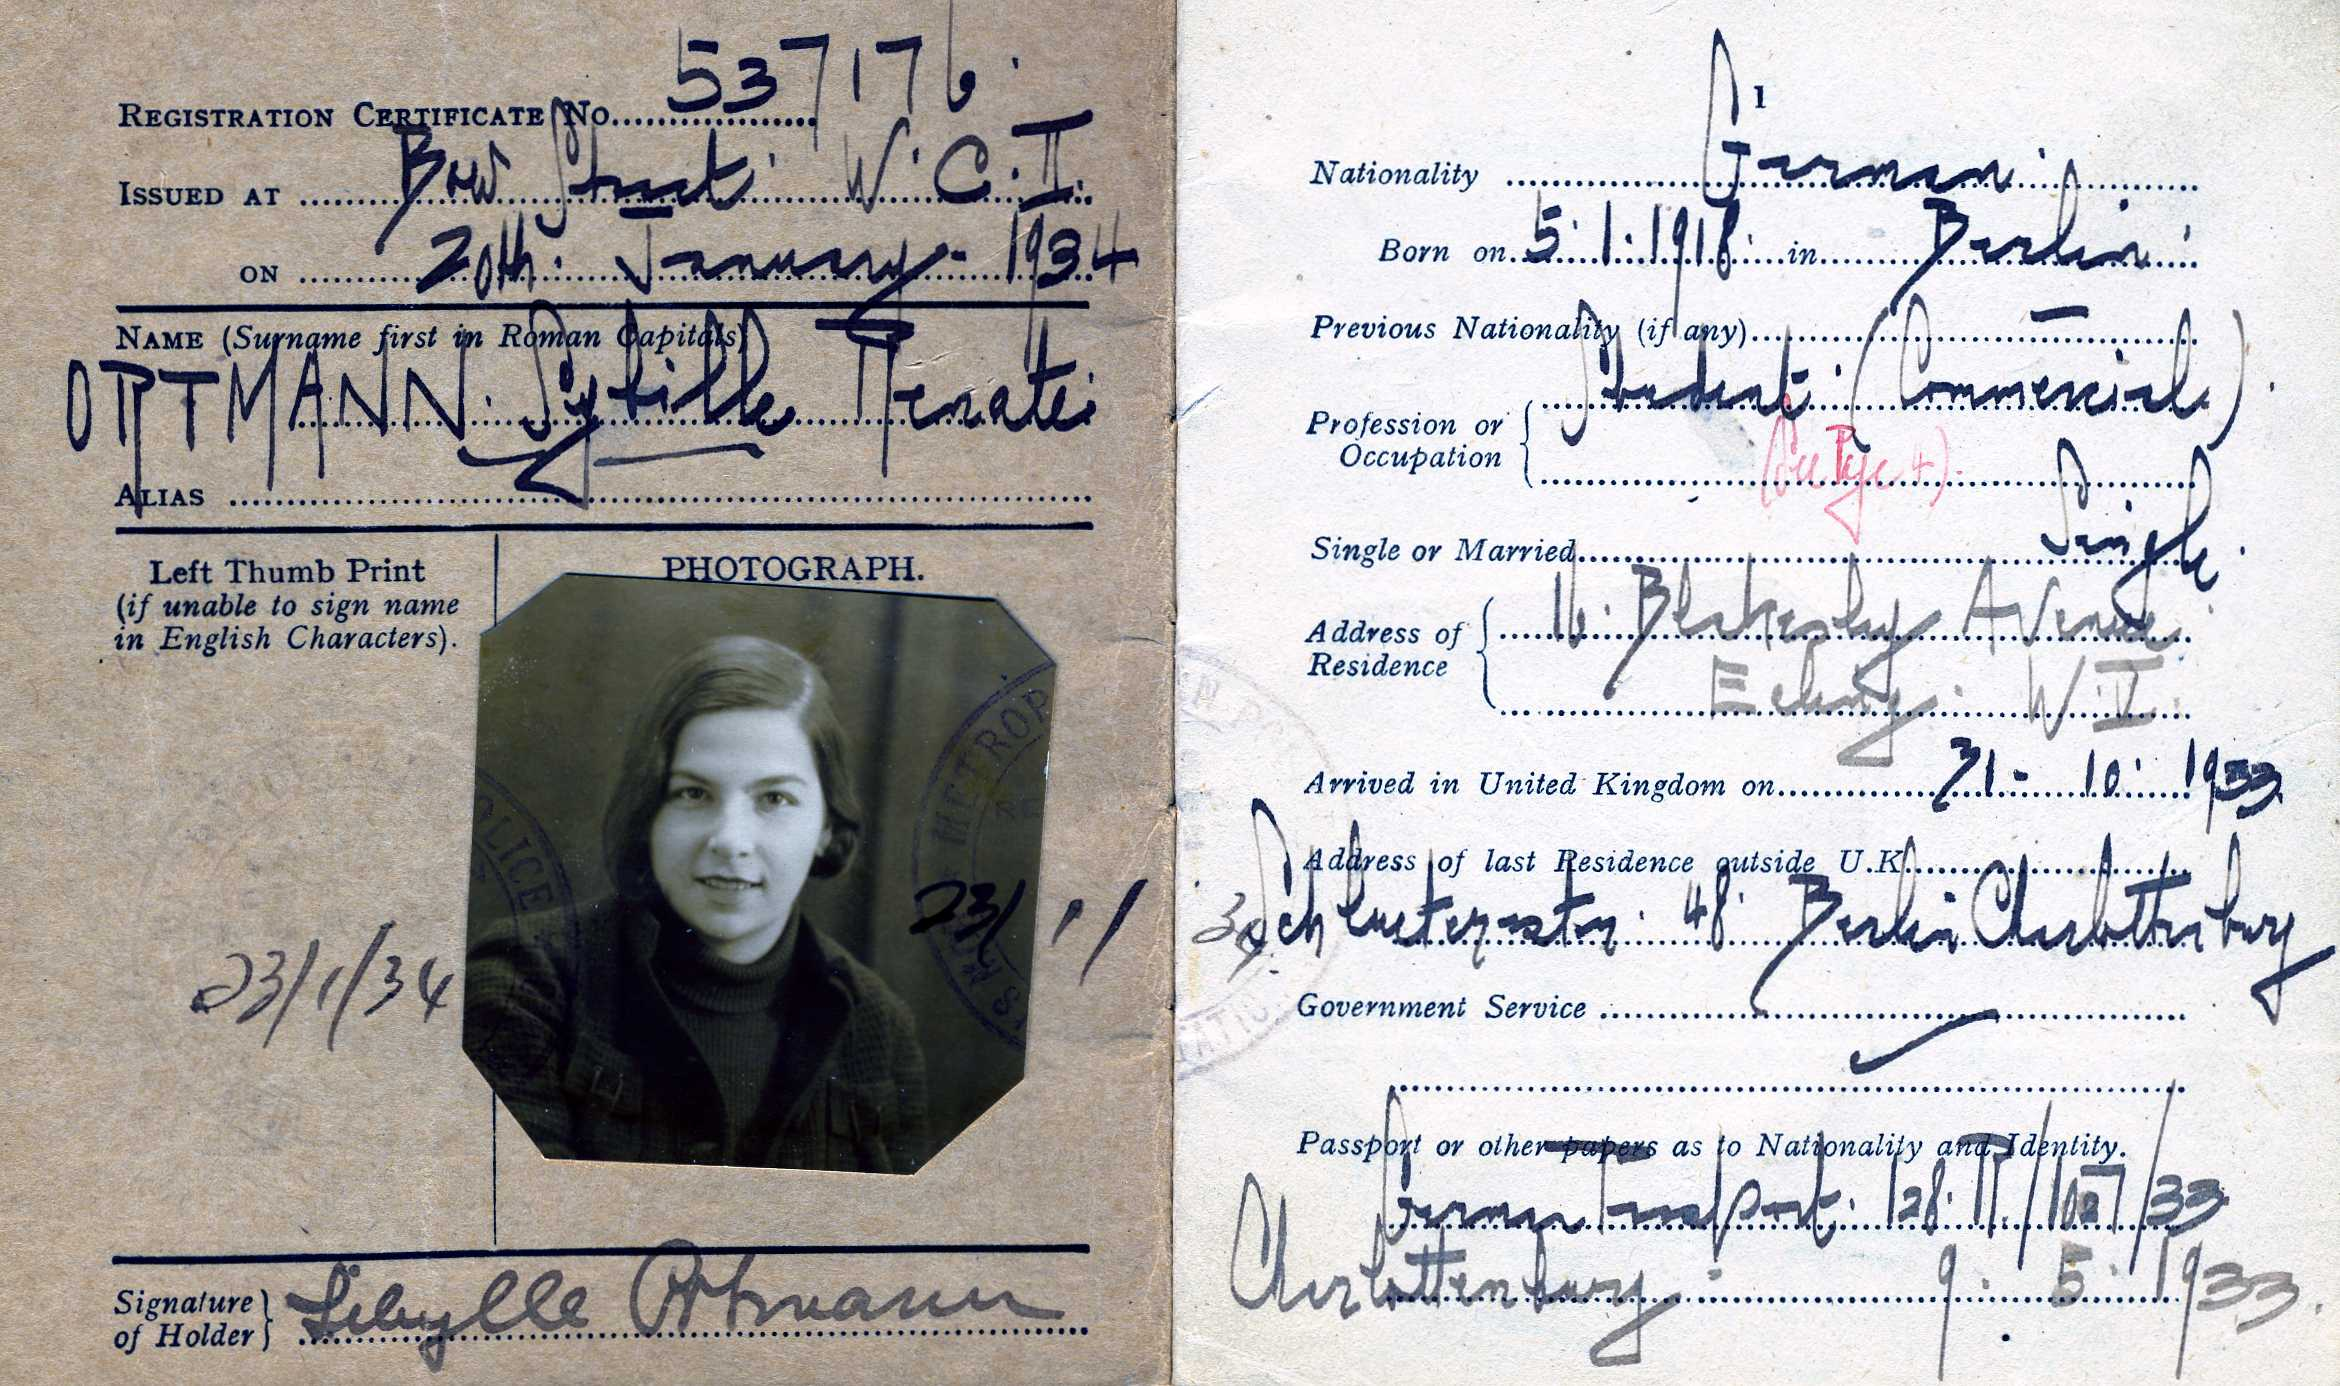 Refugee card of Sybille Ortmann (1934)